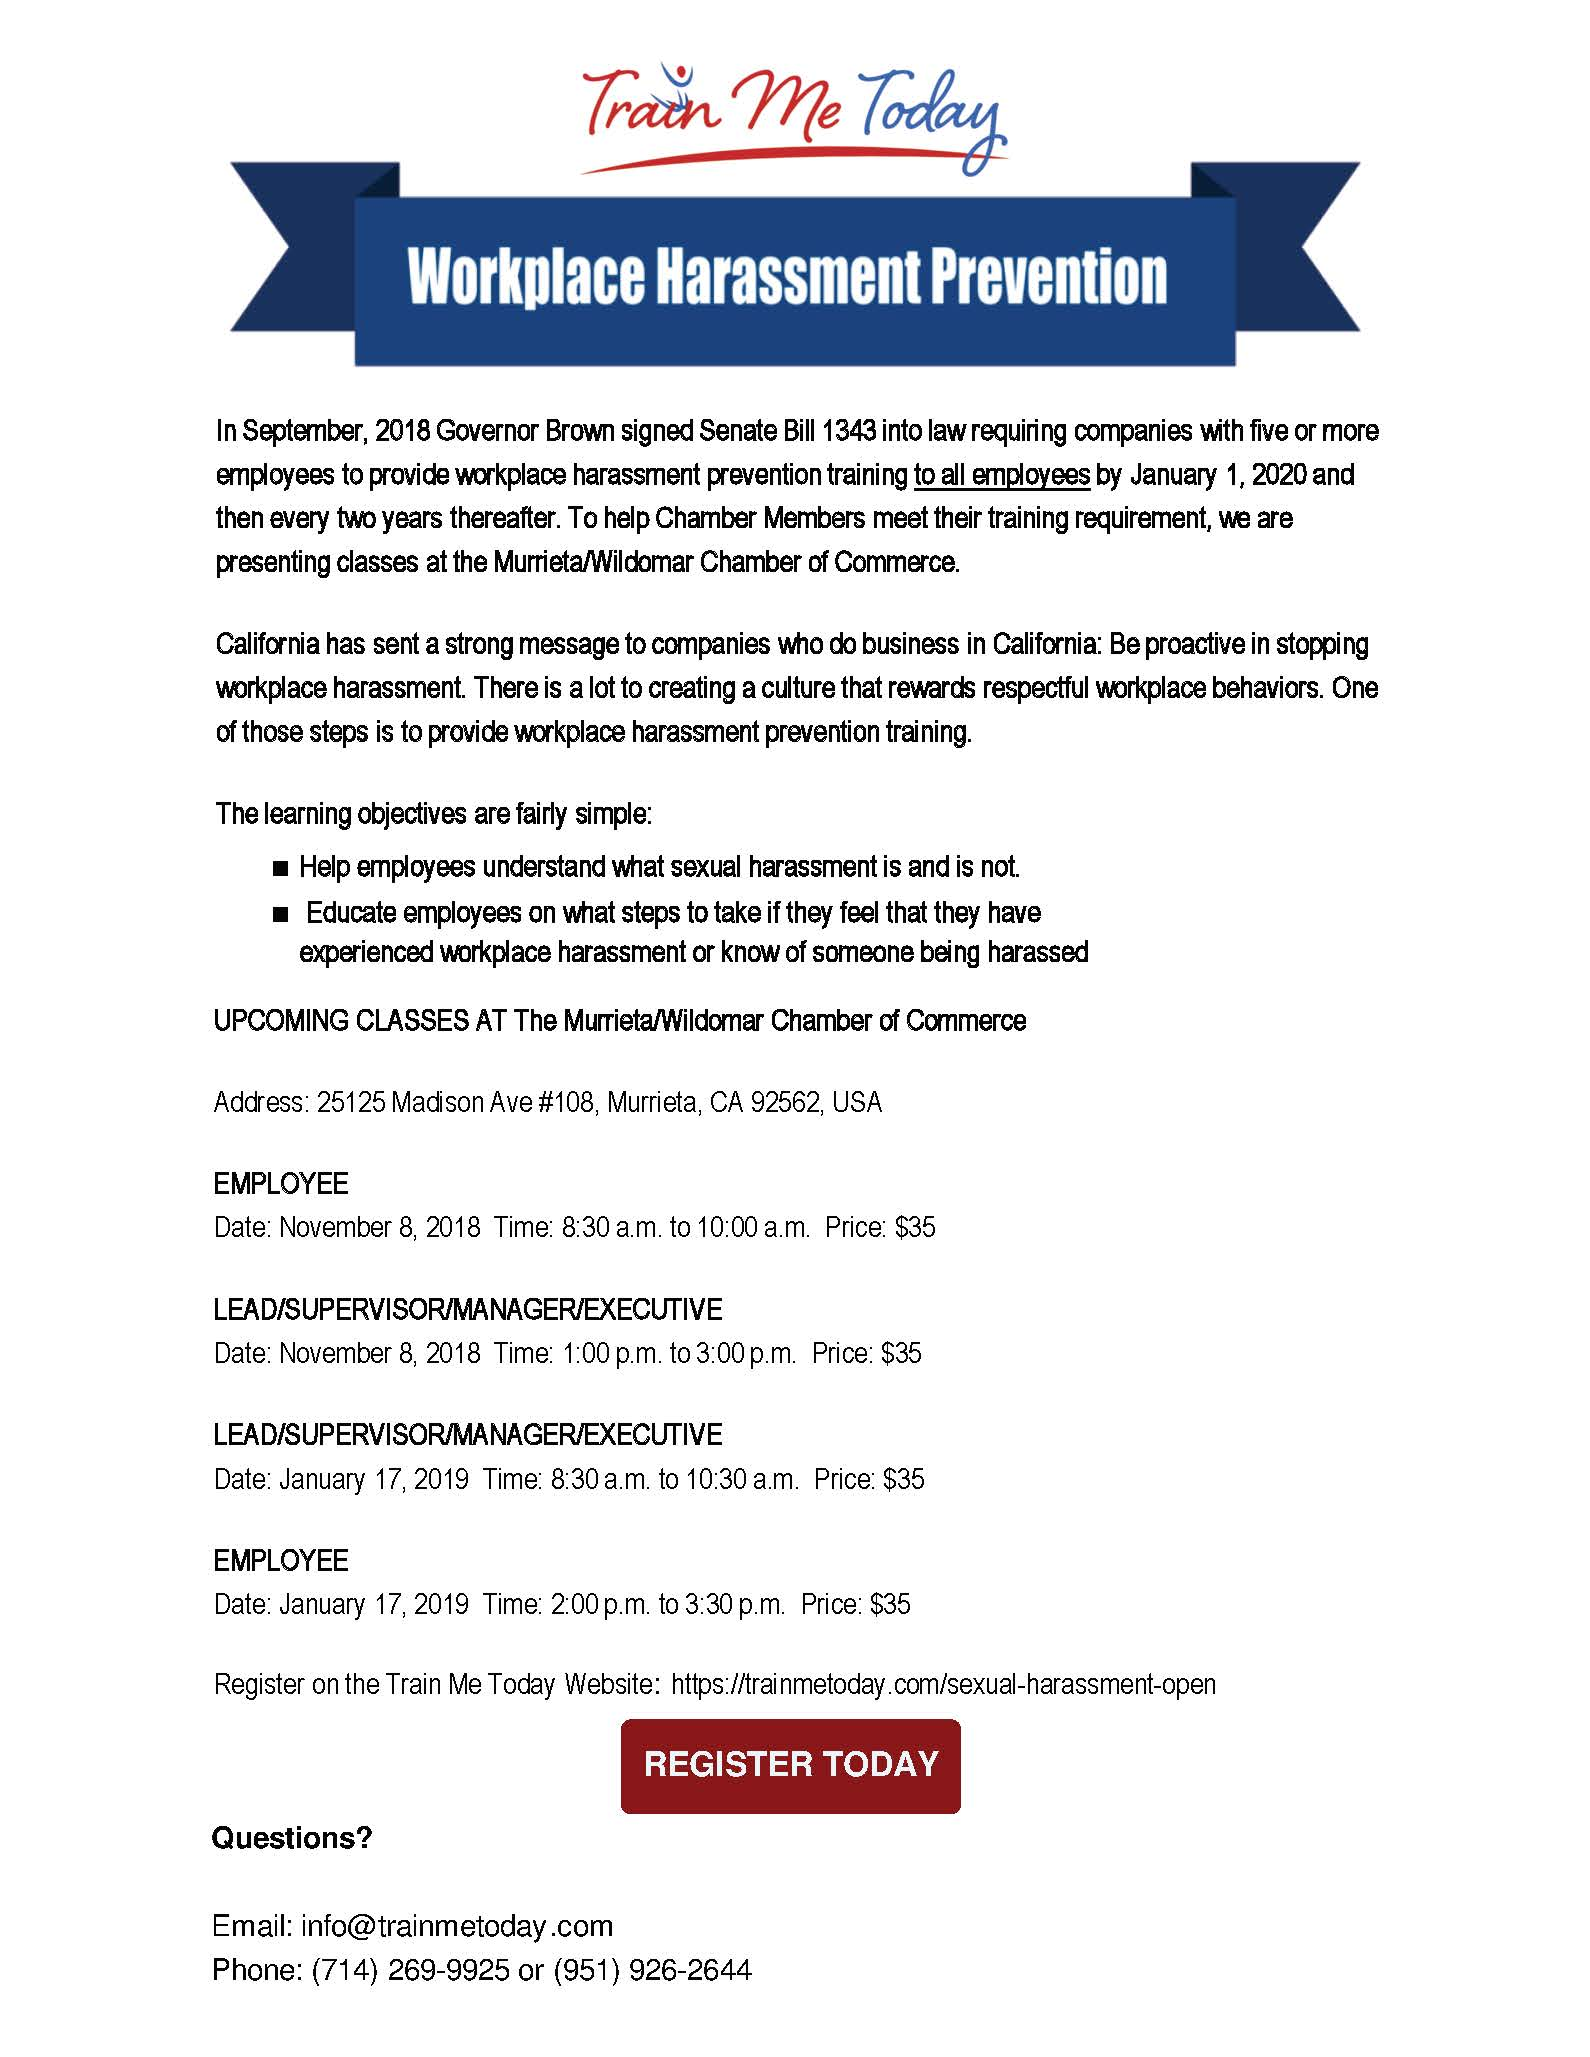 California chamber of commerce sexual harassment training